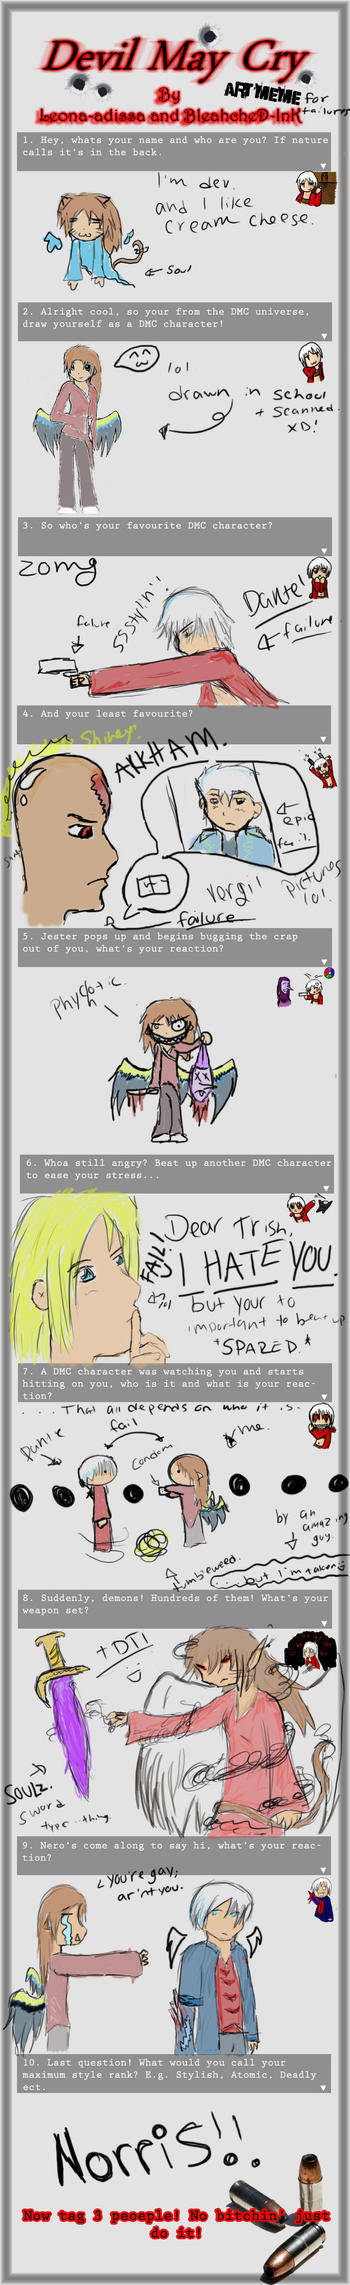 Devil May Cry art meme by Devils-Fantasy21